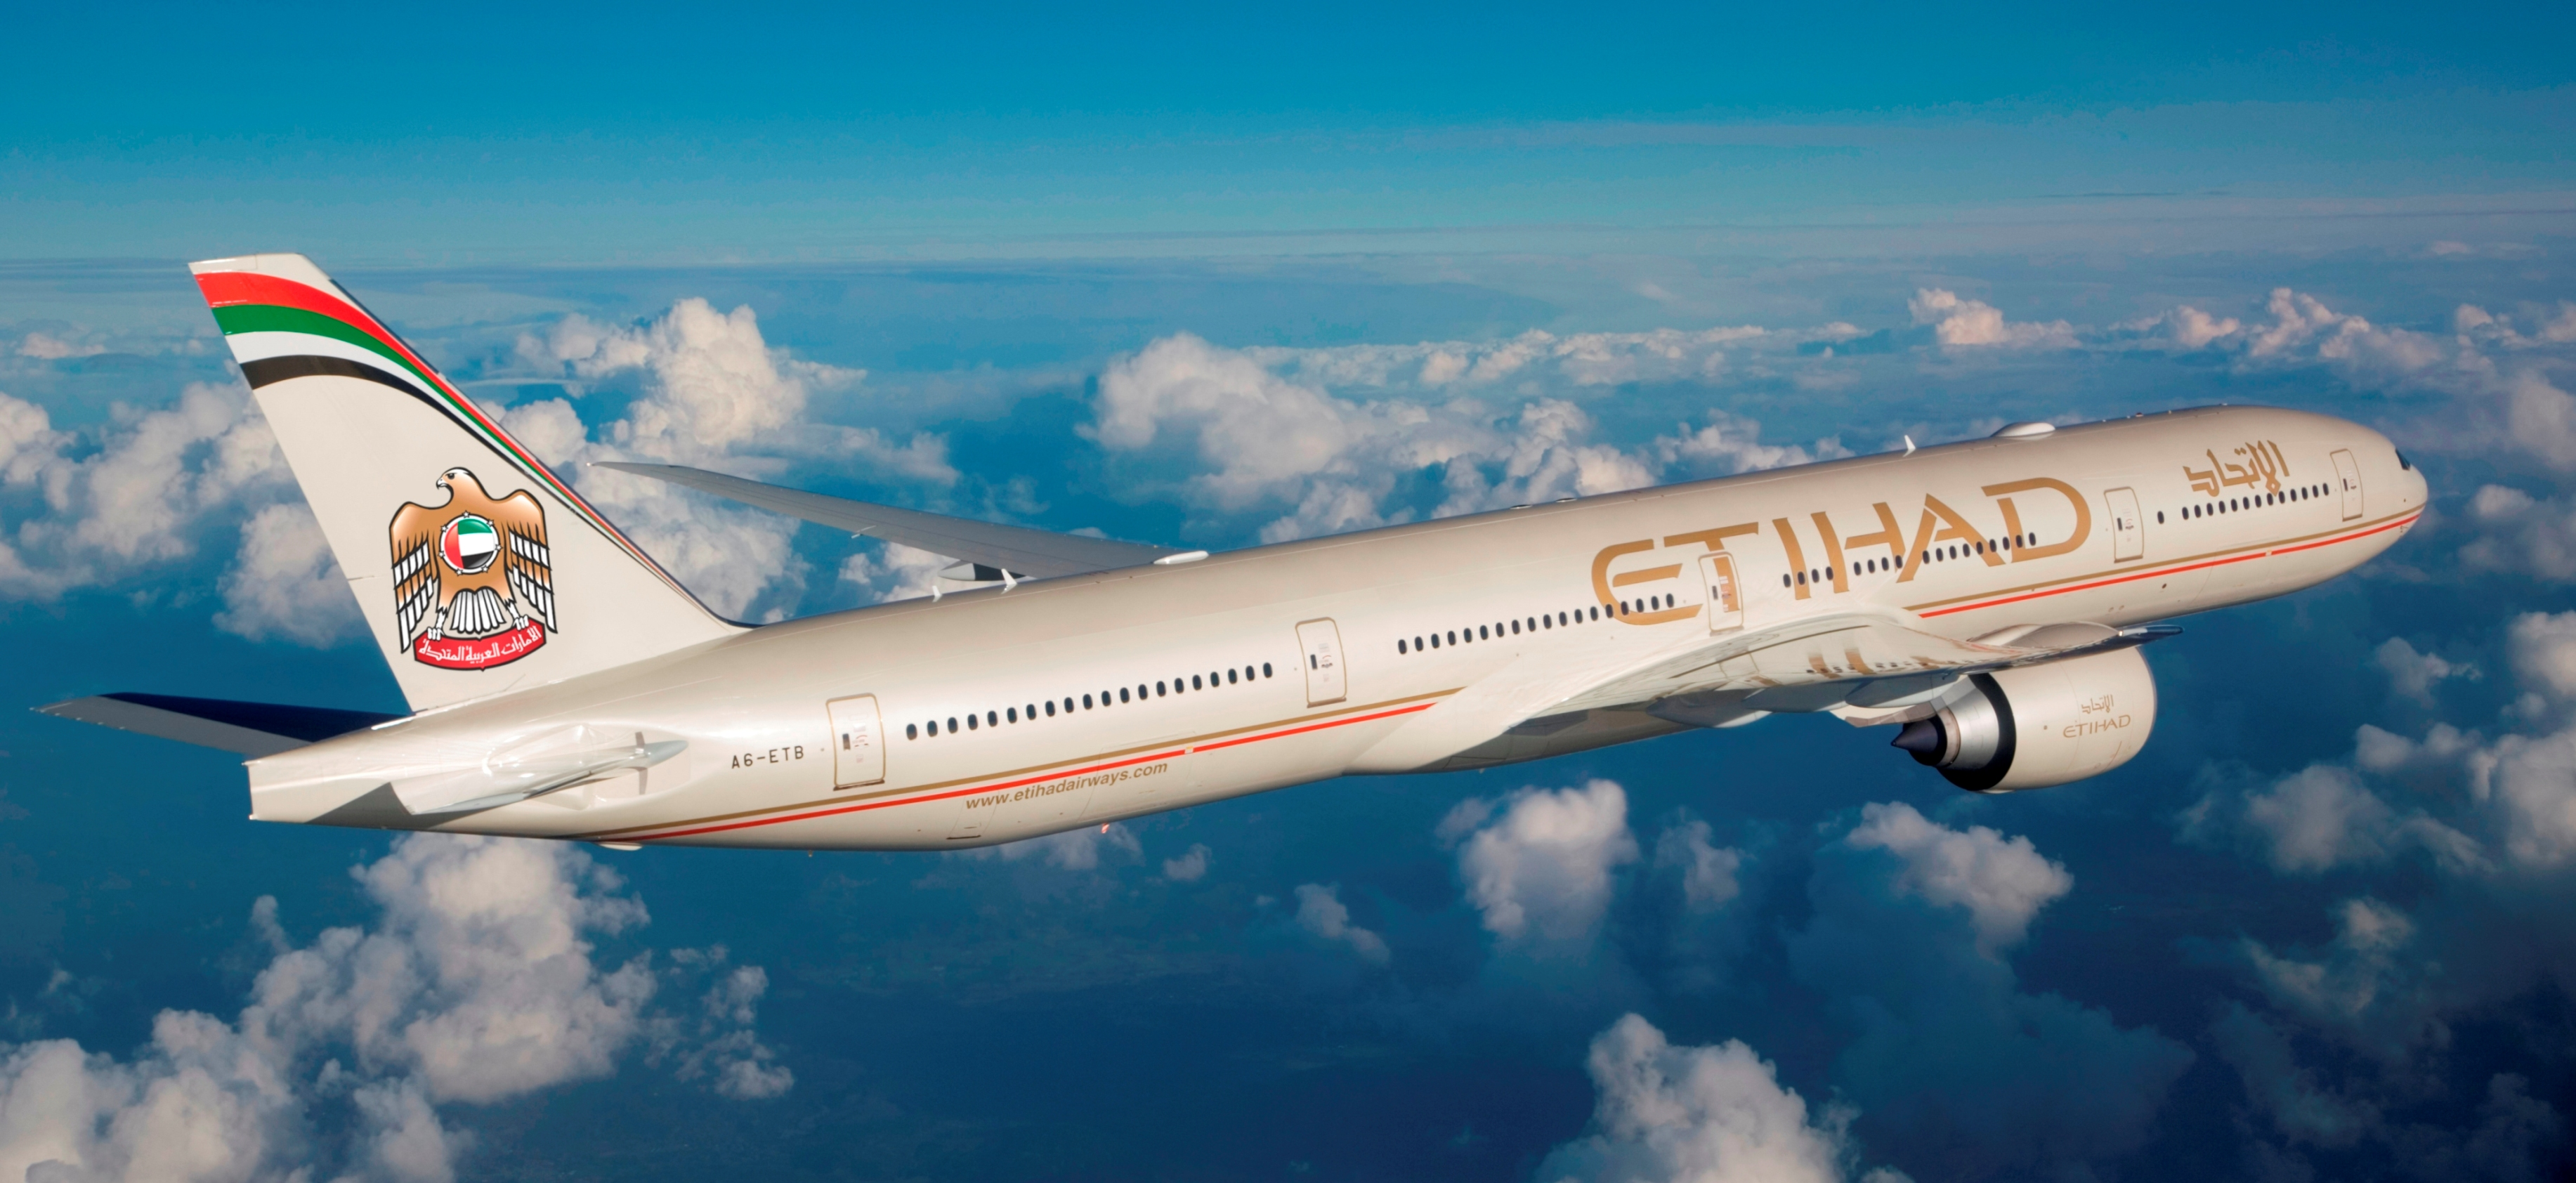 Turbulencias en vuelo de Etihad Airways